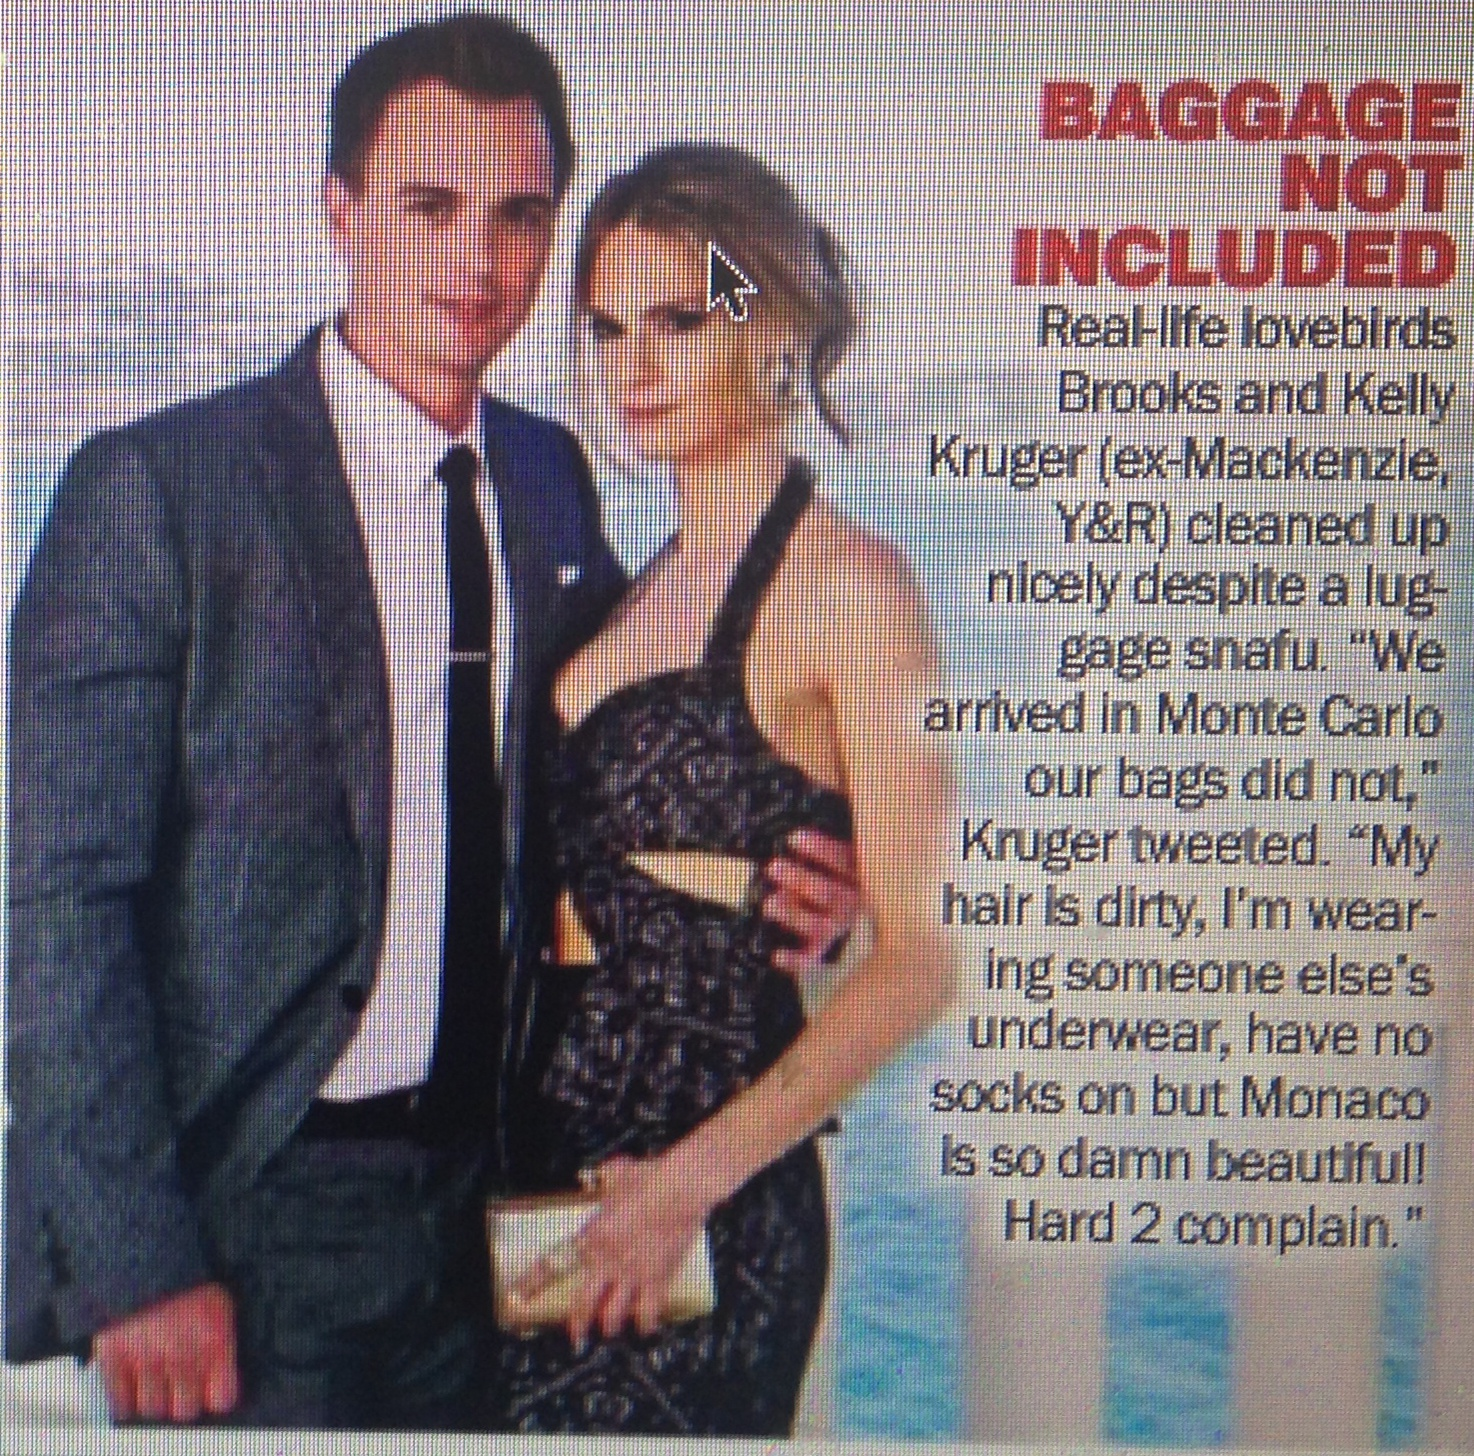 Article in SOD about our lost luggage